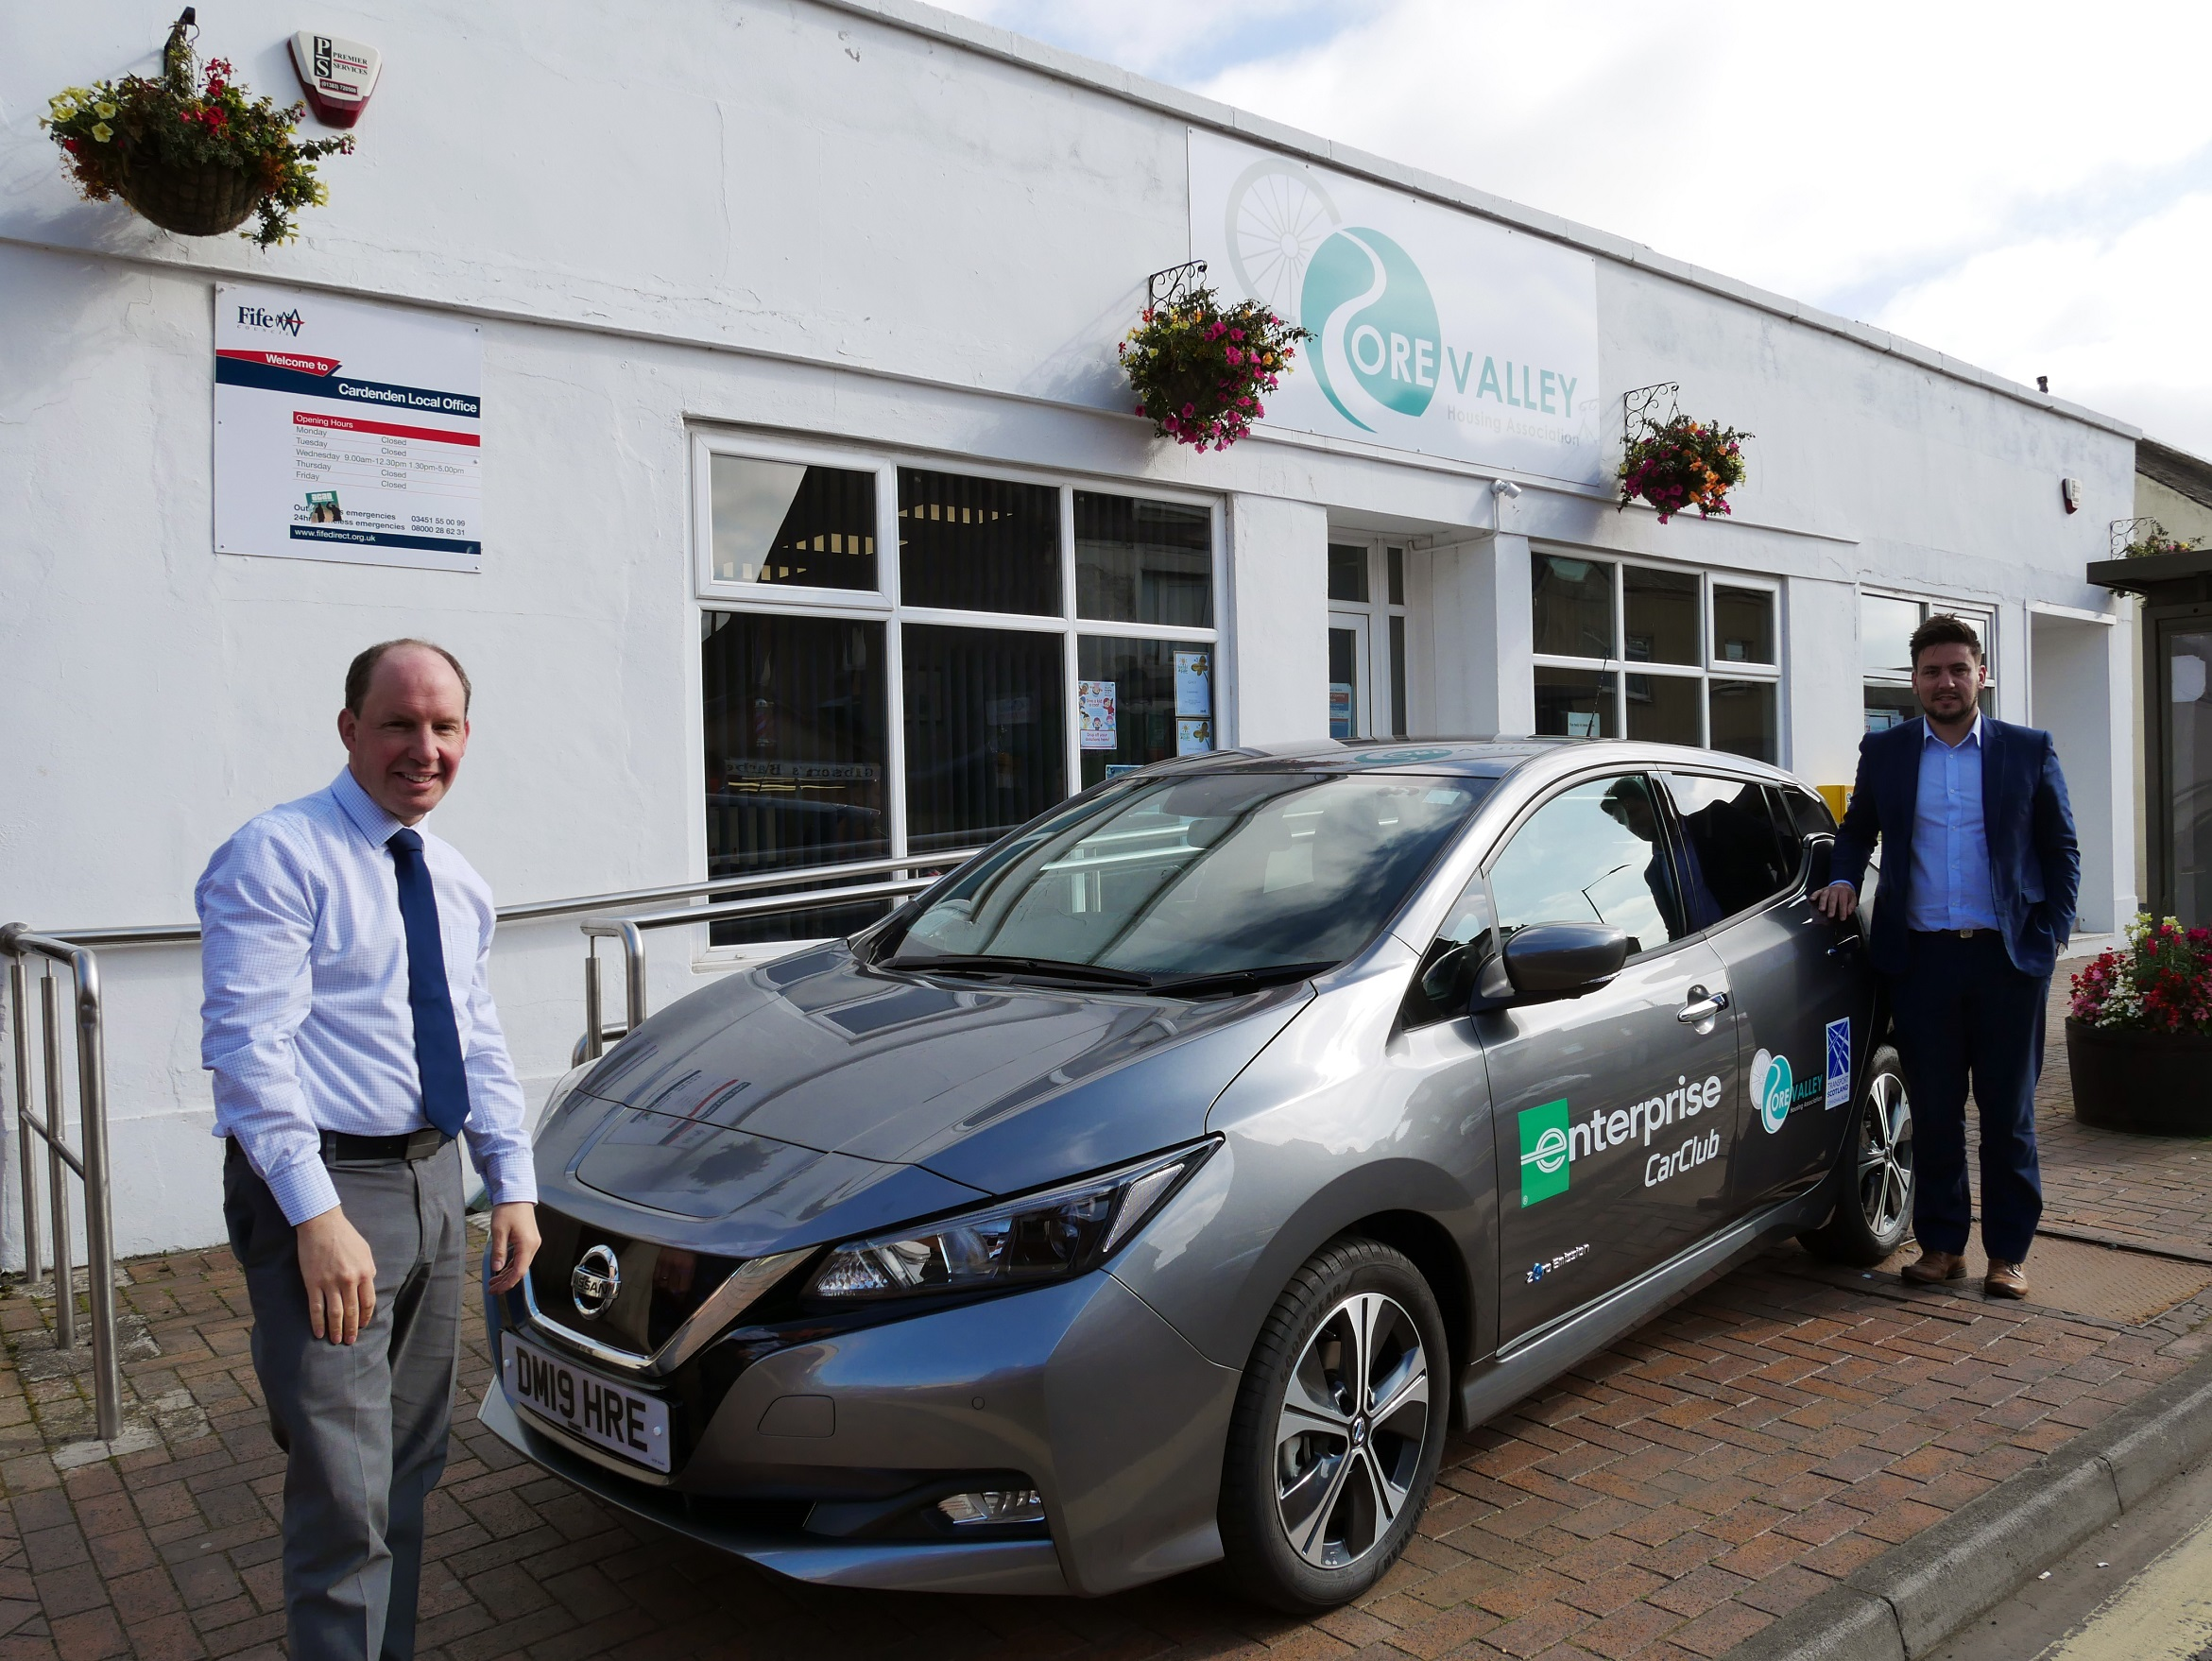 The car club will initially launch in Lochgelly and Cardenden but will soon extend to other areas.